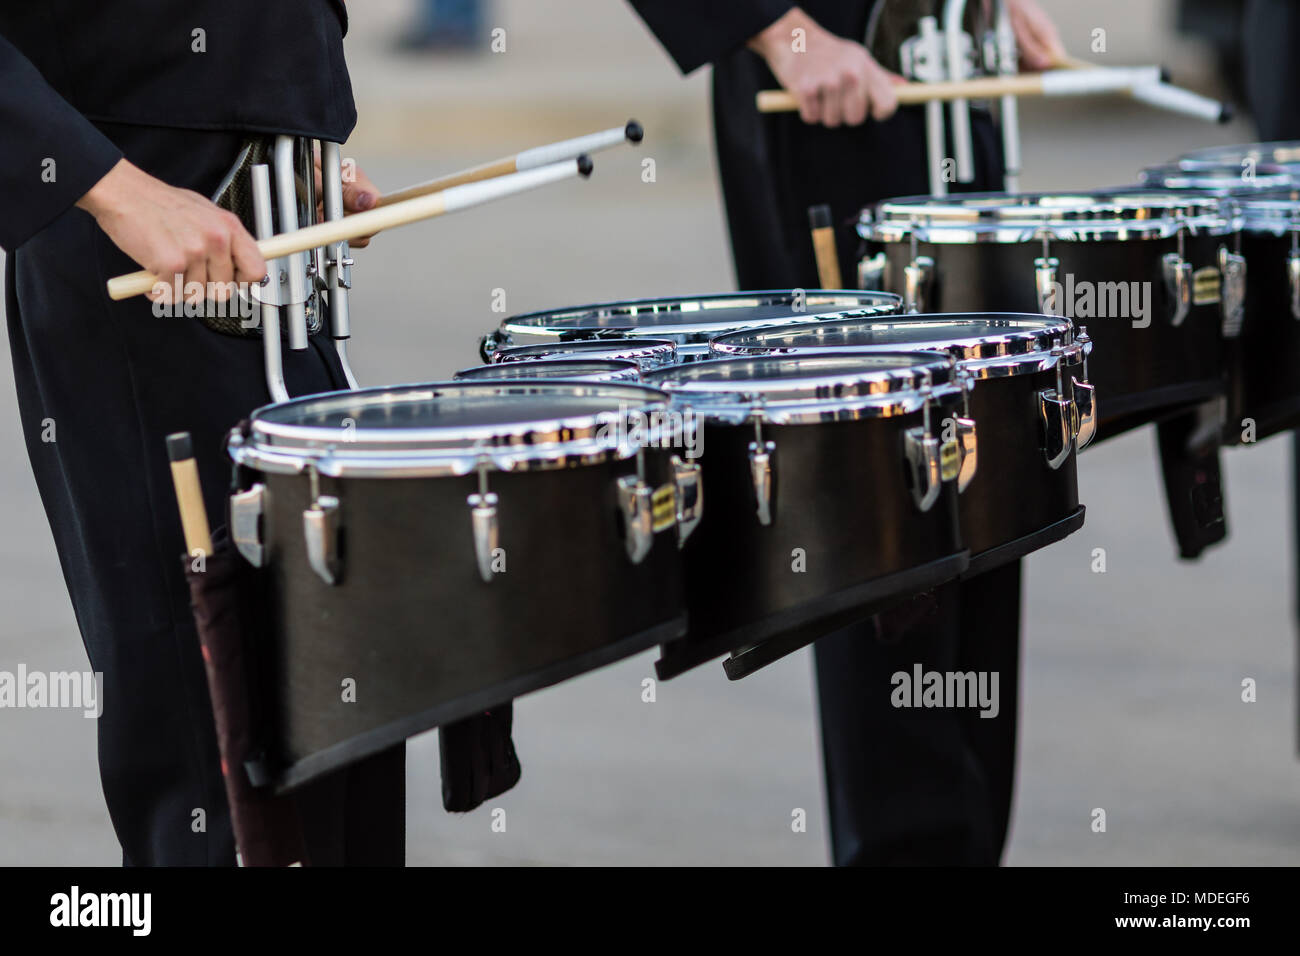 snare drum marching band stock photos snare drum marching band stock images alamy. Black Bedroom Furniture Sets. Home Design Ideas